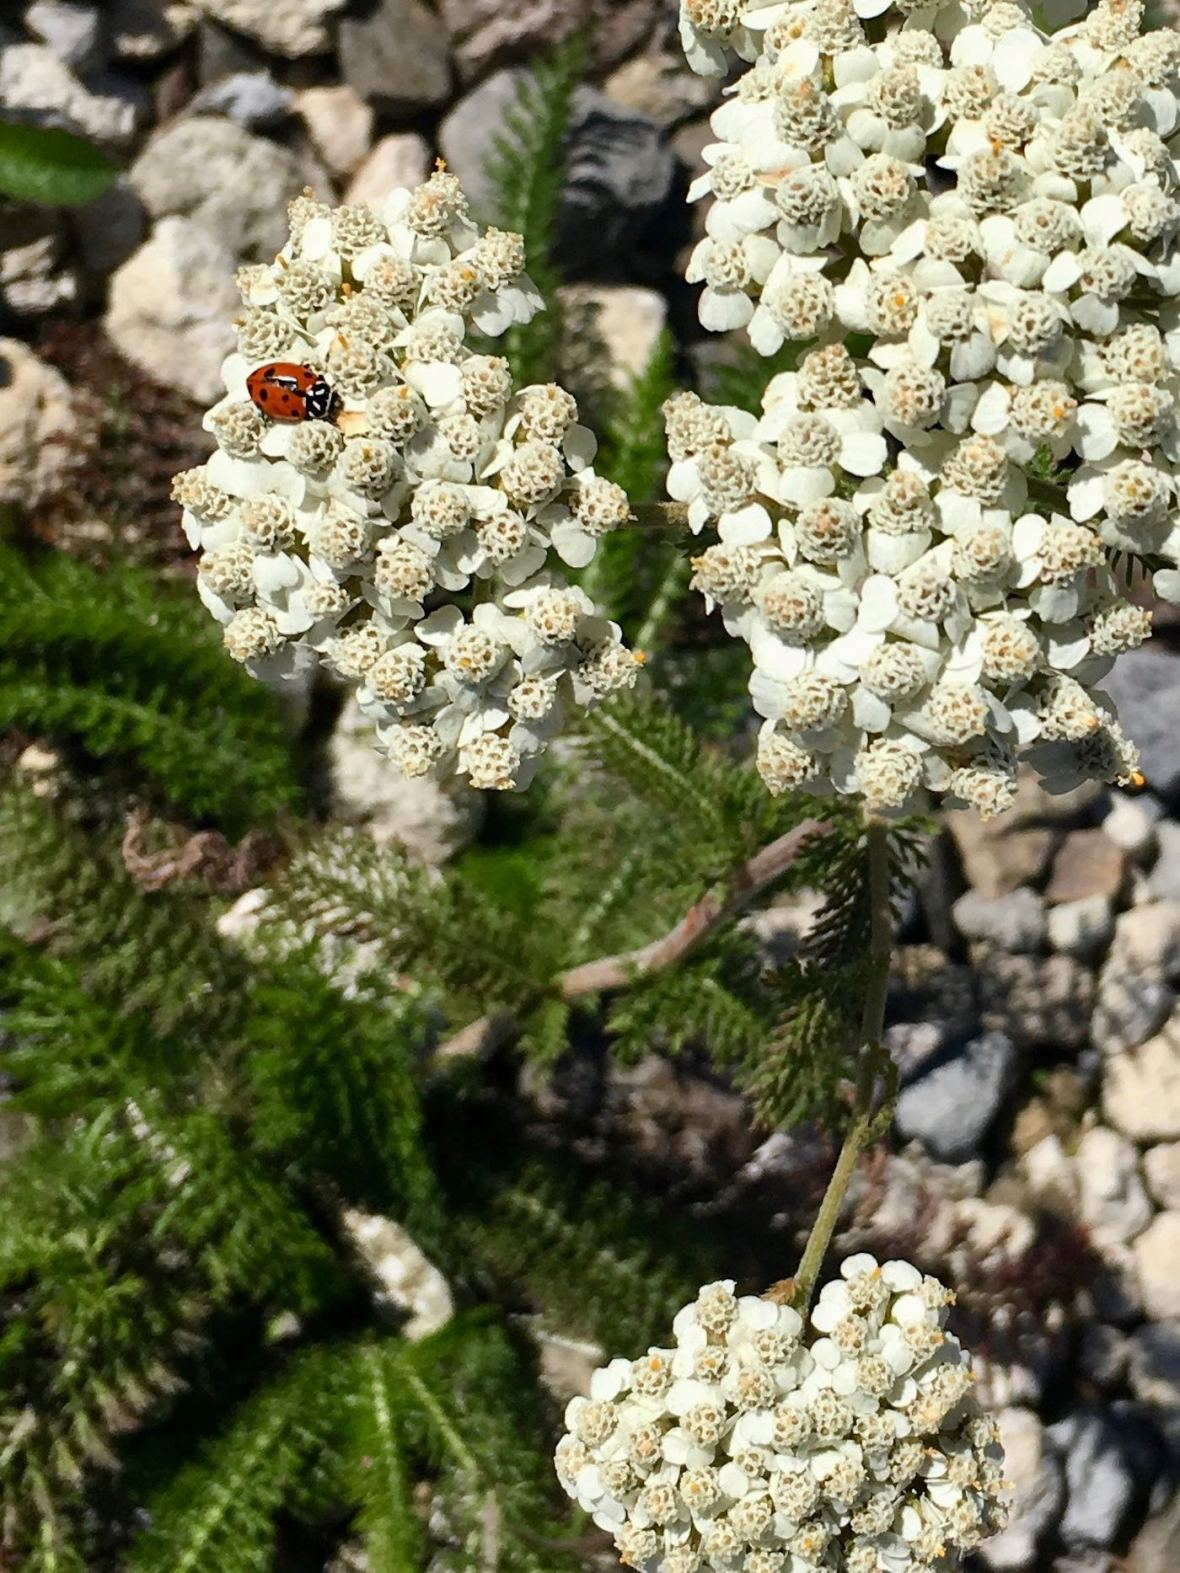 Ladybug and Wildflowers at Mount St. Helens National Volcanic Monument